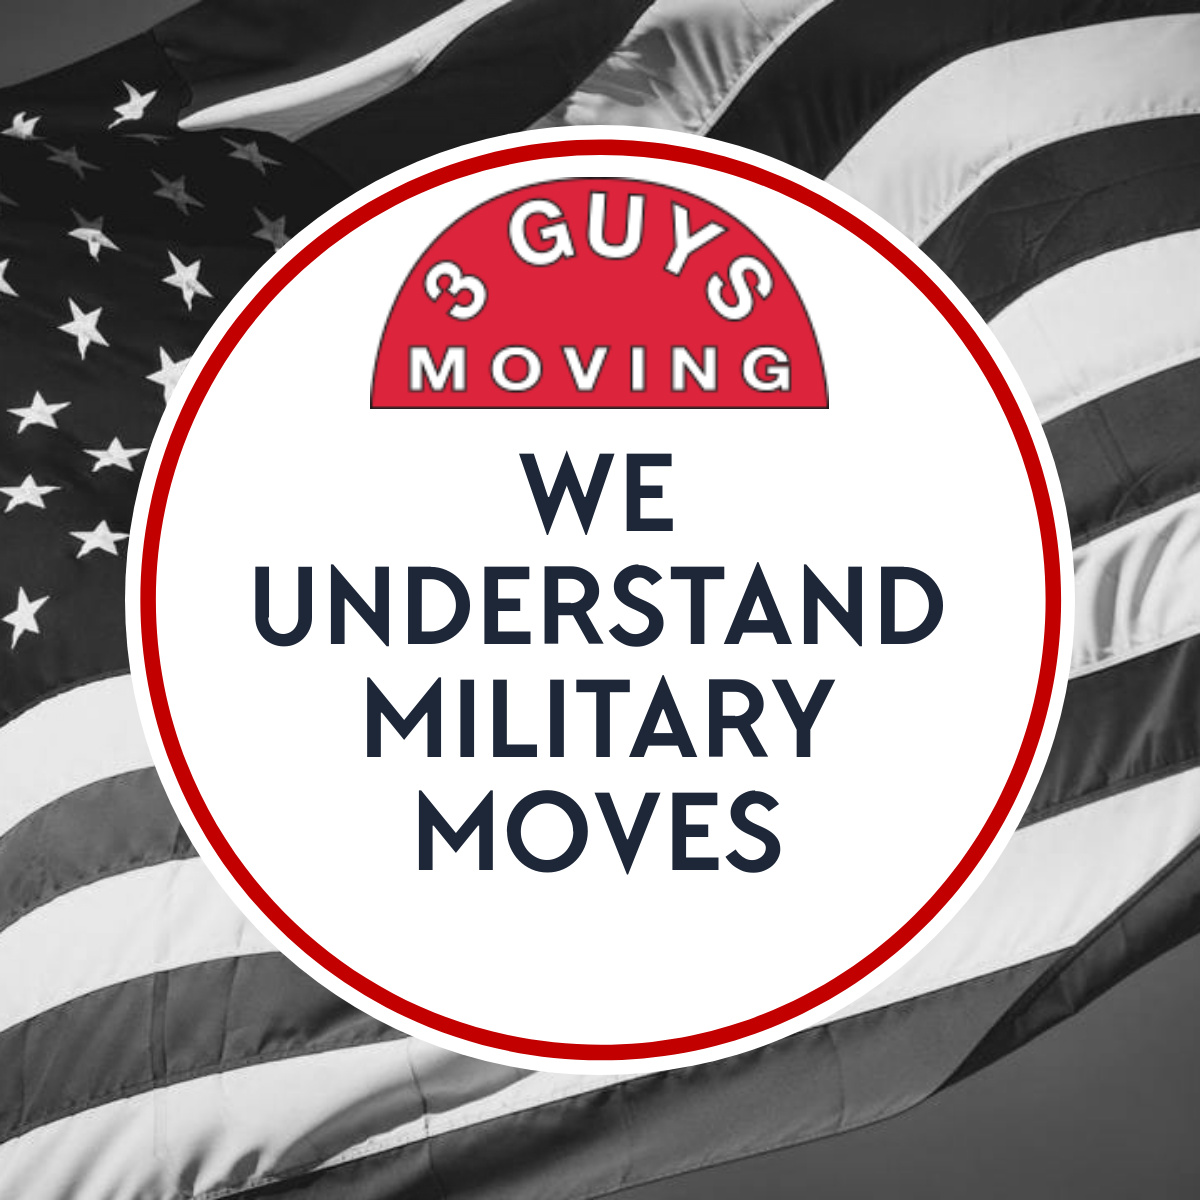 WE UNDERSTAND MILITARY MOVES - We Understand Military Moves